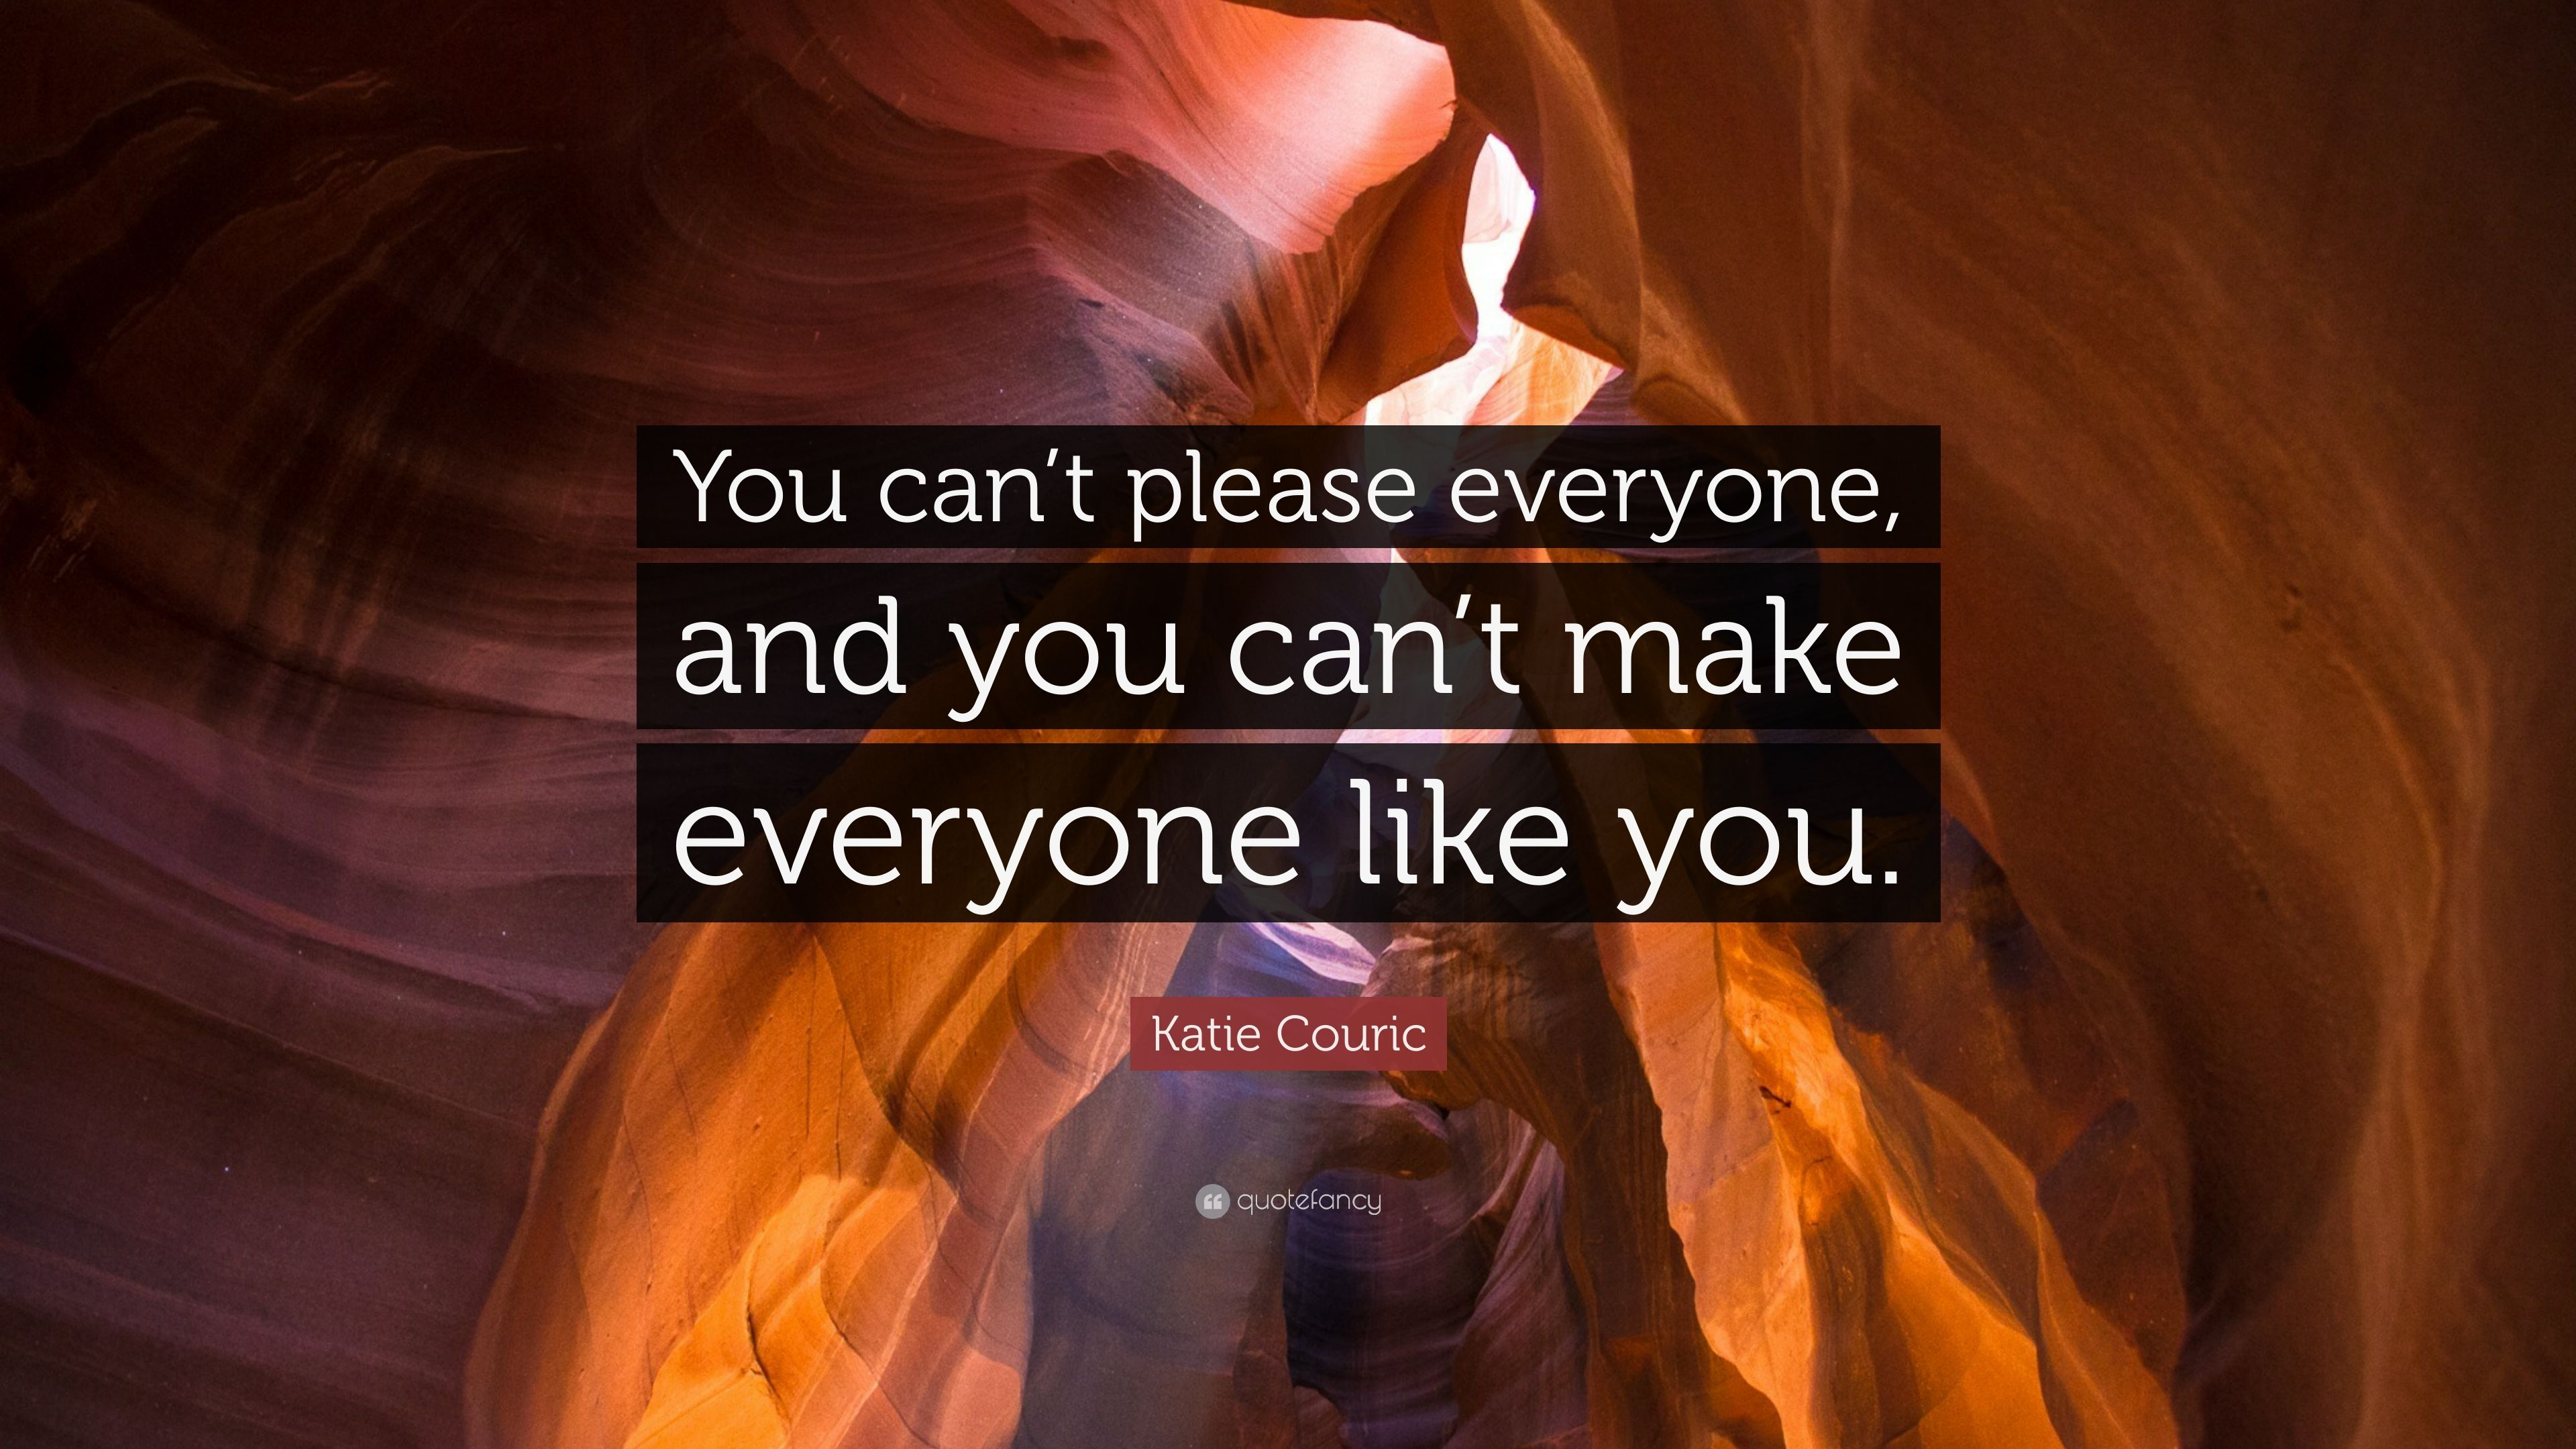 katie couric quote   u201cyou can u2019t please everyone  and you